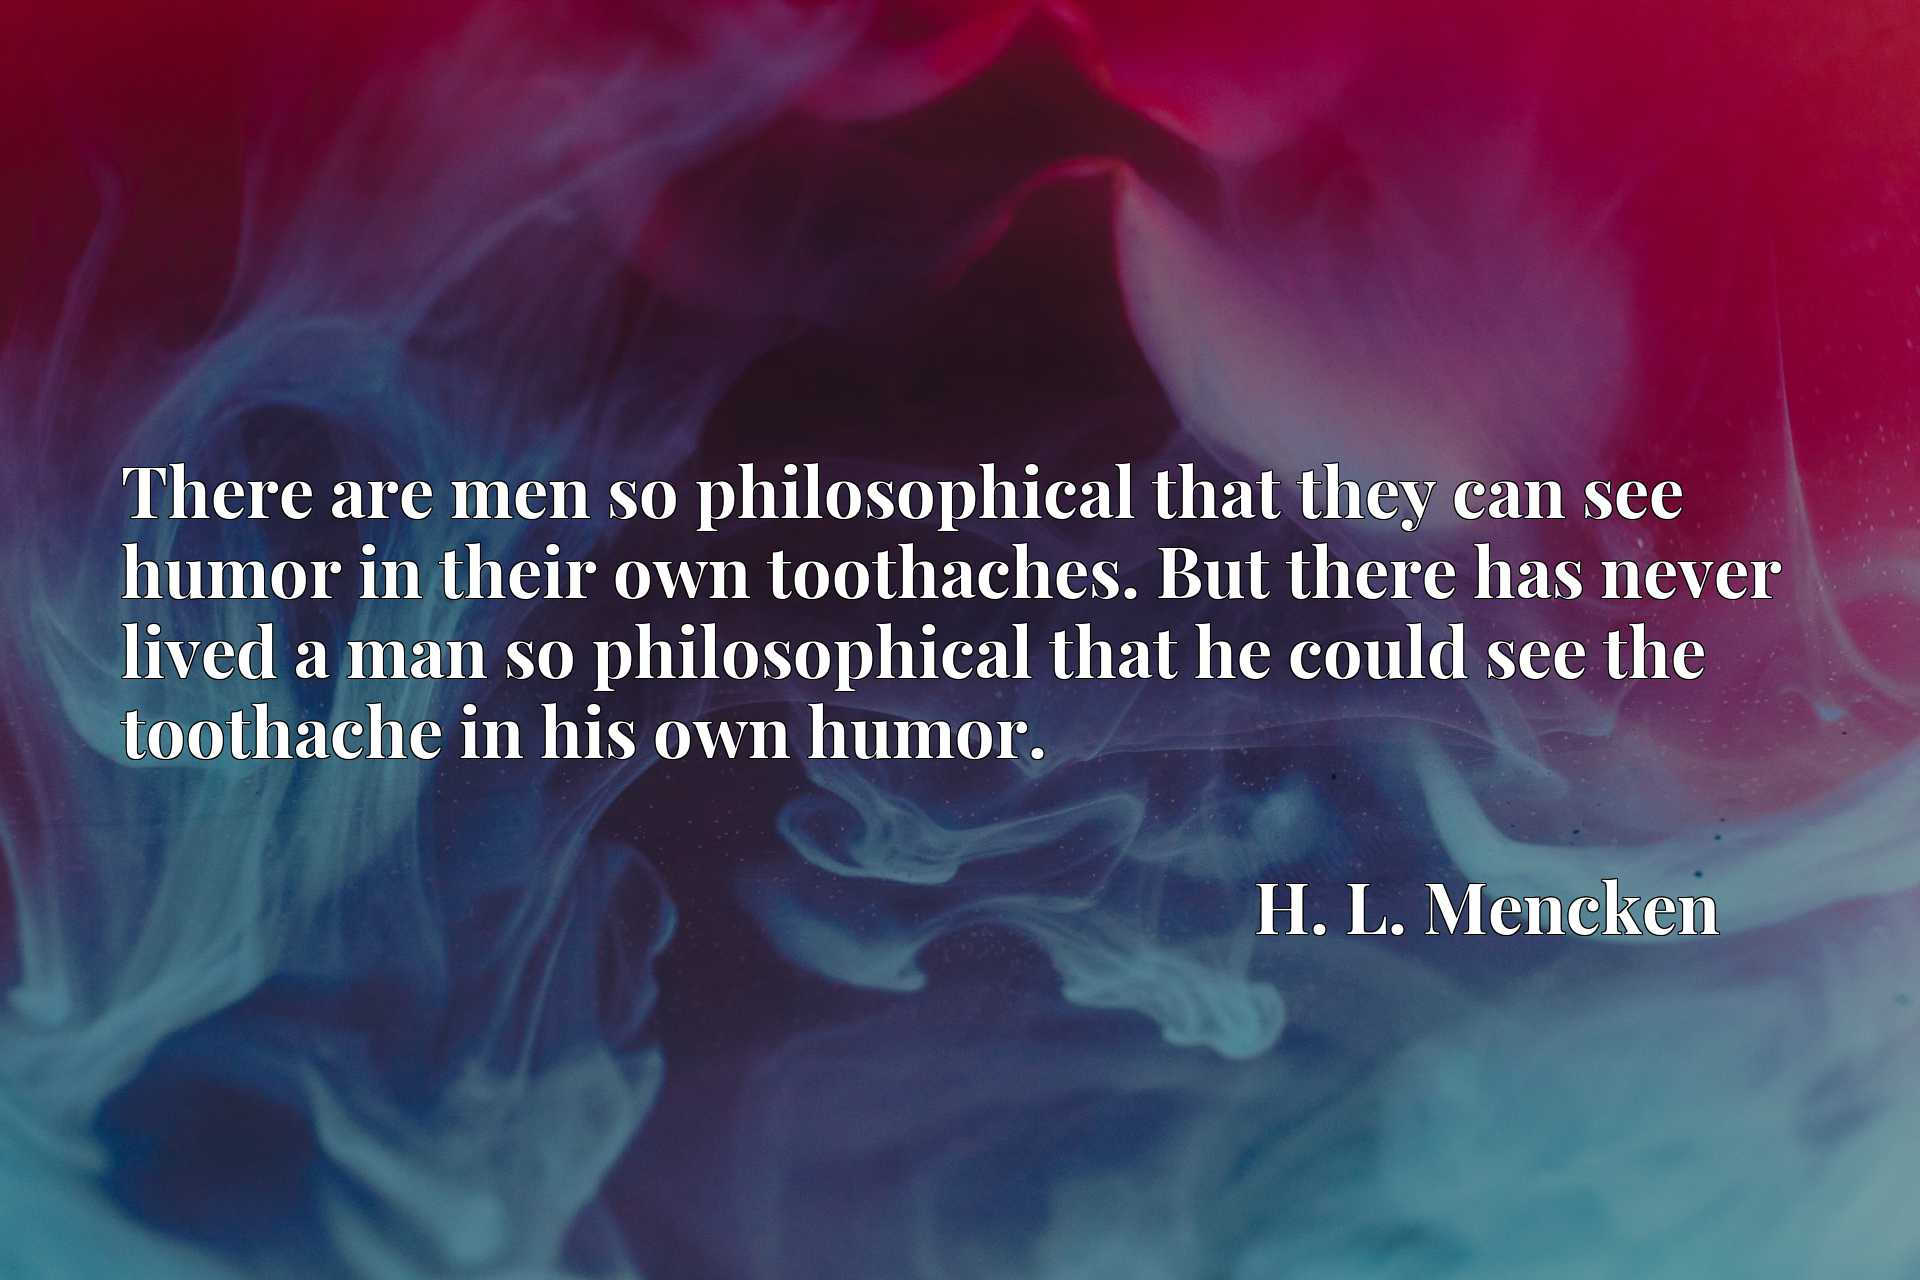 There are men so philosophical that they can see humor in their own toothaches. But there has never lived a man so philosophical that he could see the toothache in his own humor.